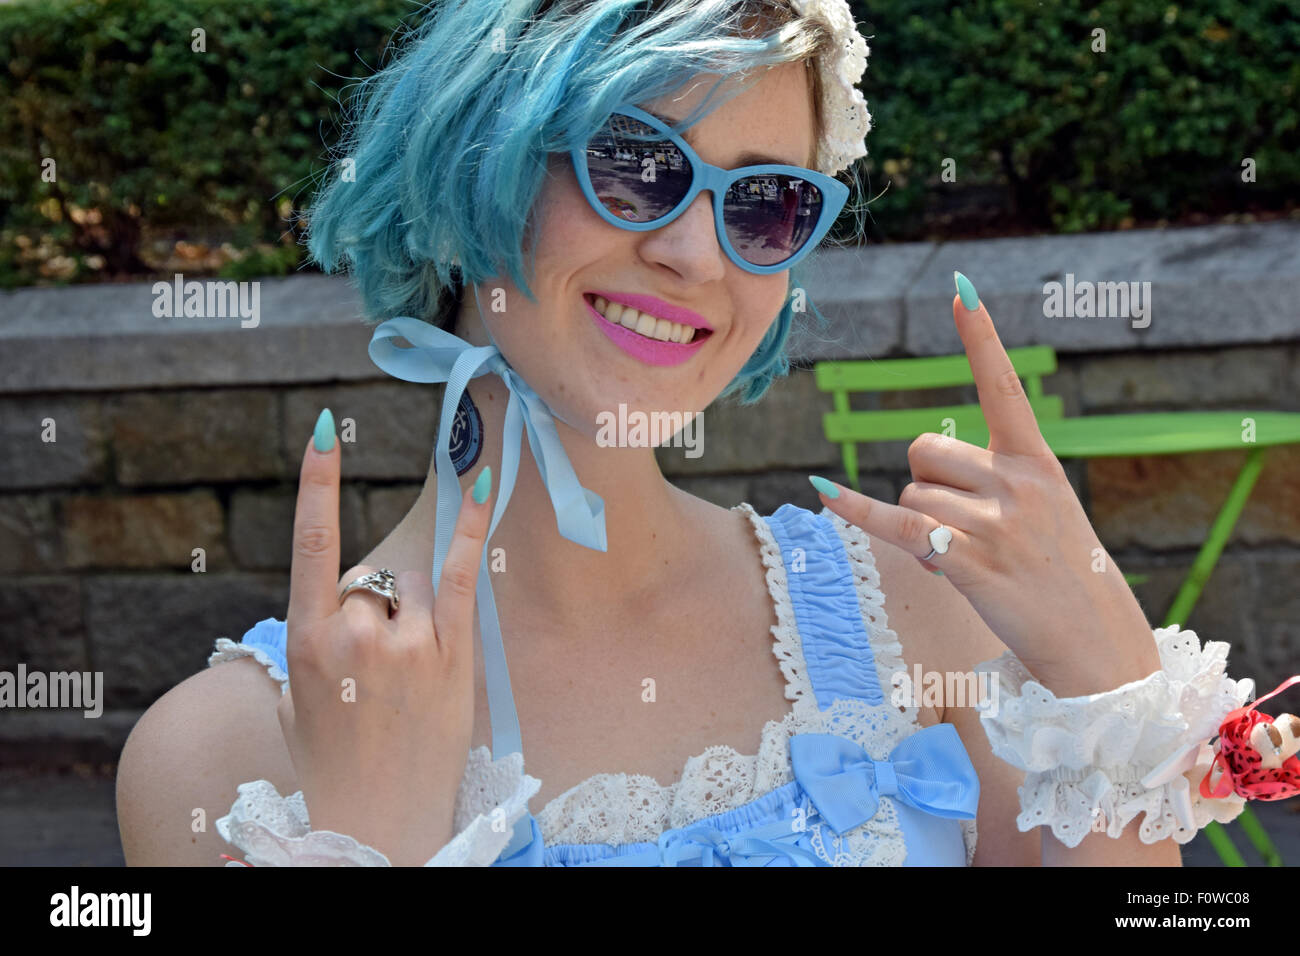 A performance artist dressed in light blue with light blue hair and fingrer nails,  at Union Square Park in New - Stock Image